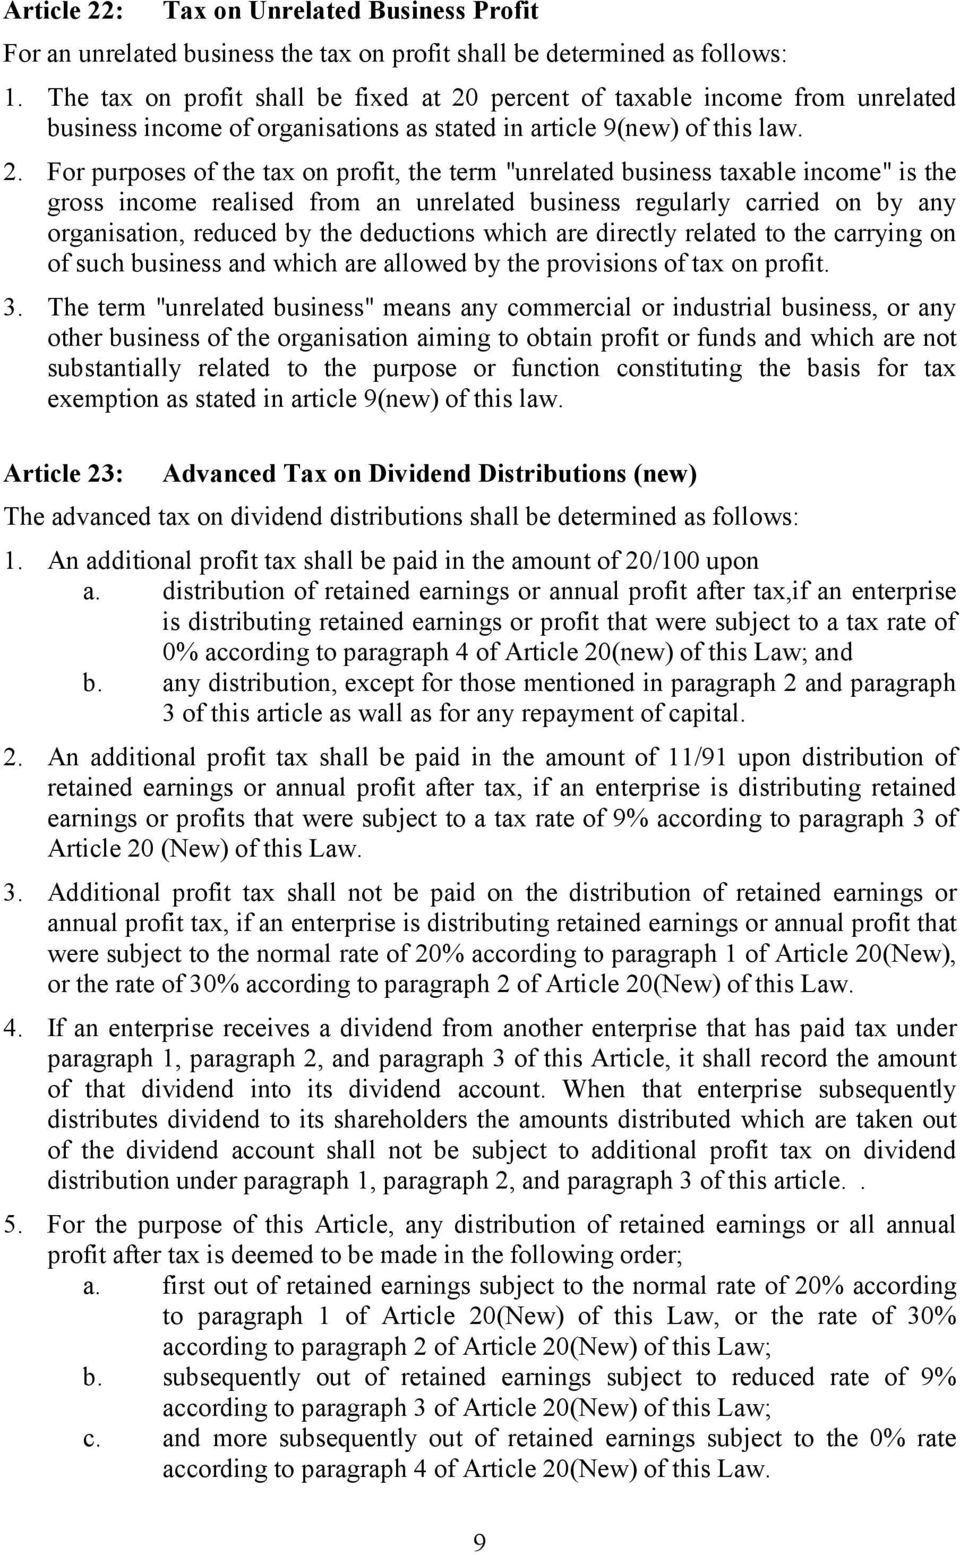 percent of taxable income from unrelated business income of organisations as stated in article 9(new) of this law. 2.